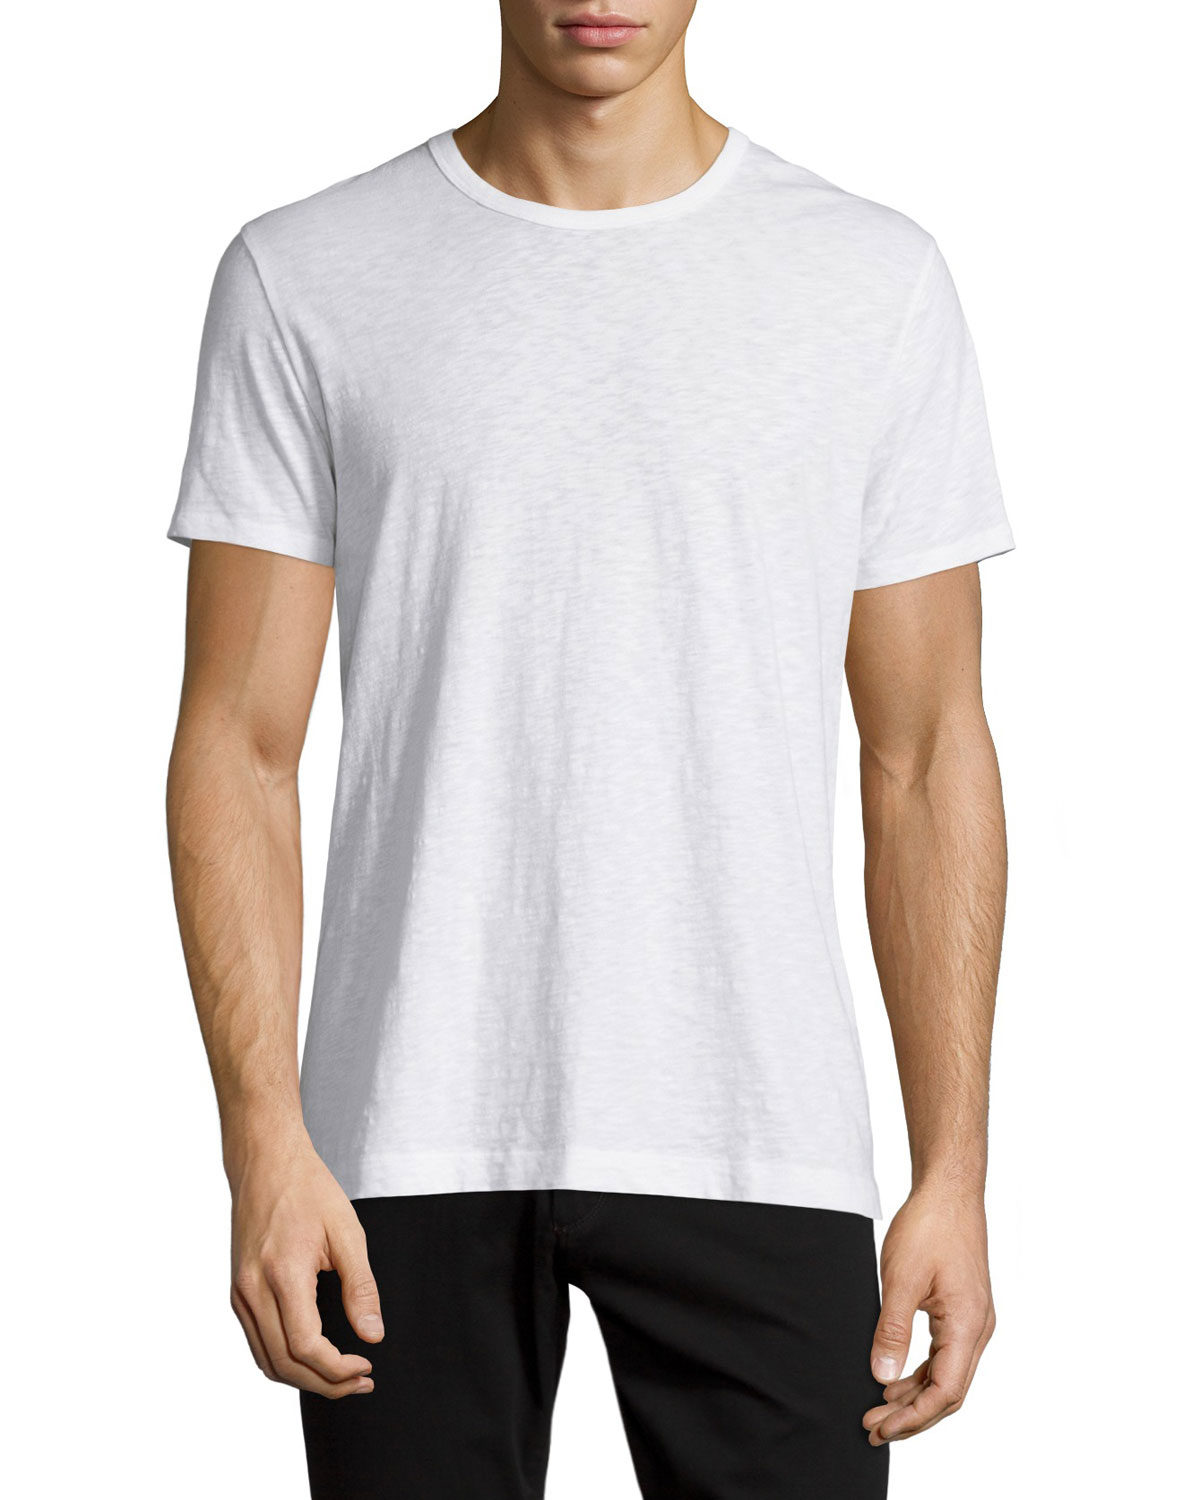 Vince slub jersey crewneck t shirt in white for men lyst for Vince tee shirts sale